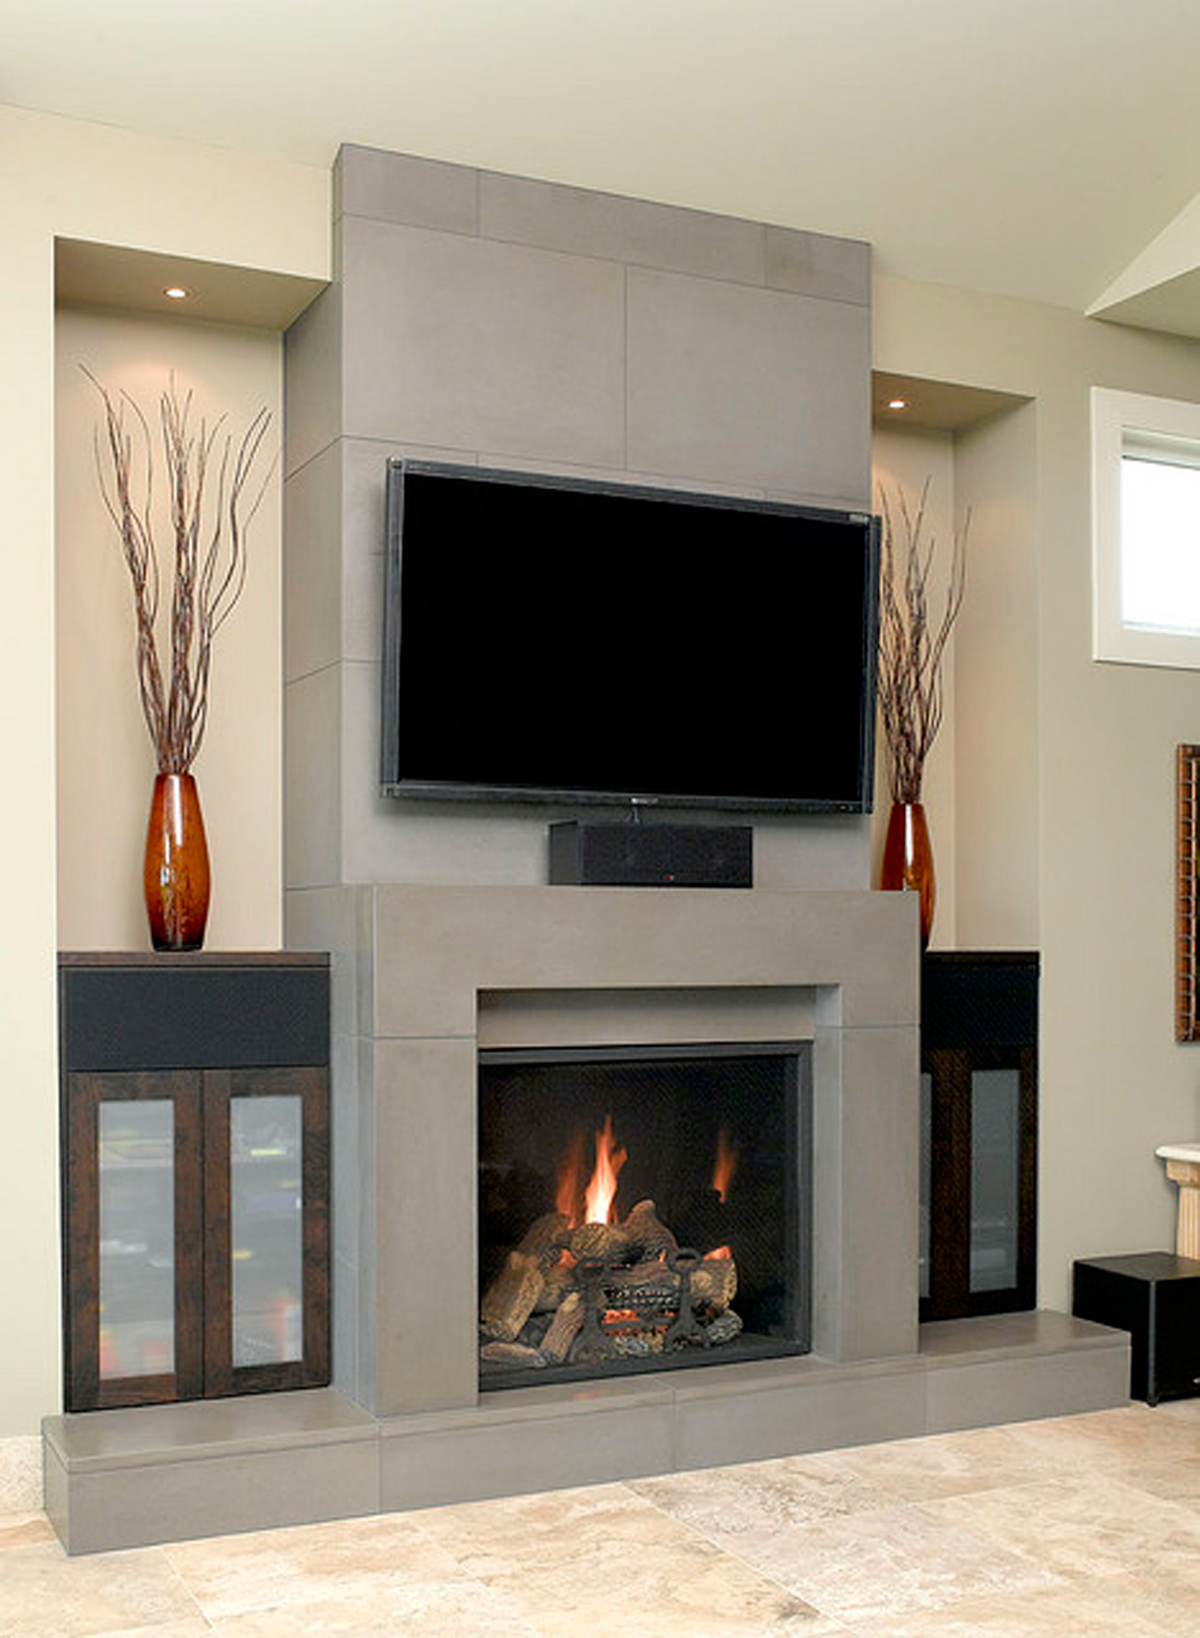 designs one of 5 total snapshots contemporary gas fireplace designs - Fireplace Design Ideas